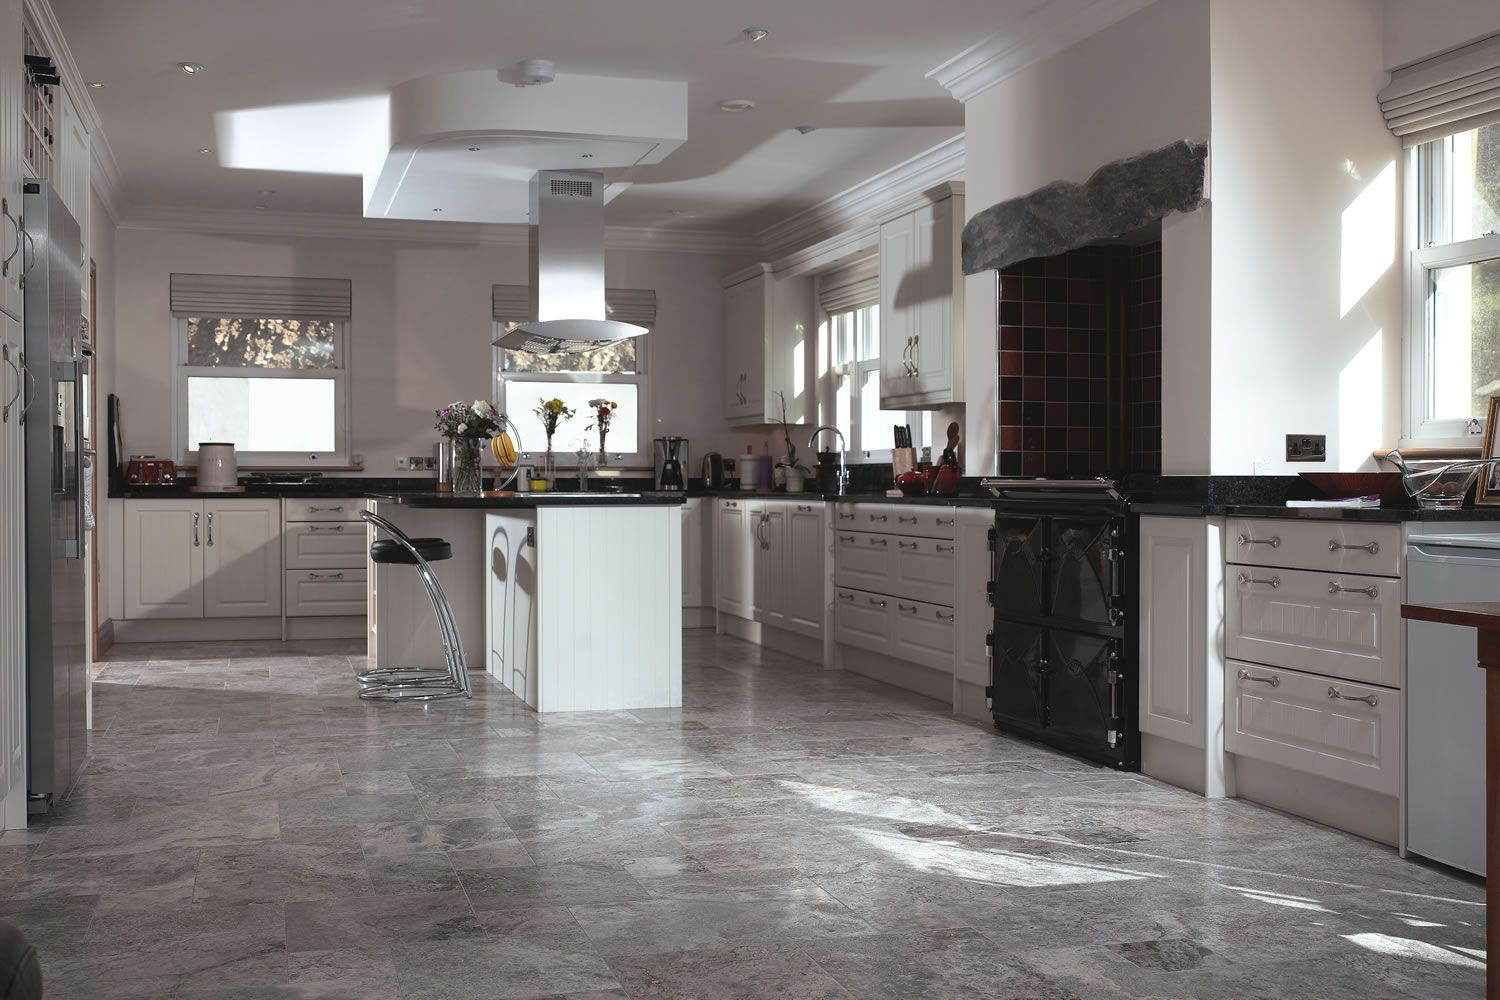 Travertine Flooring In Kitchen Grange Silver Grey Travertine Kitchen Ideas Pinterest Grey